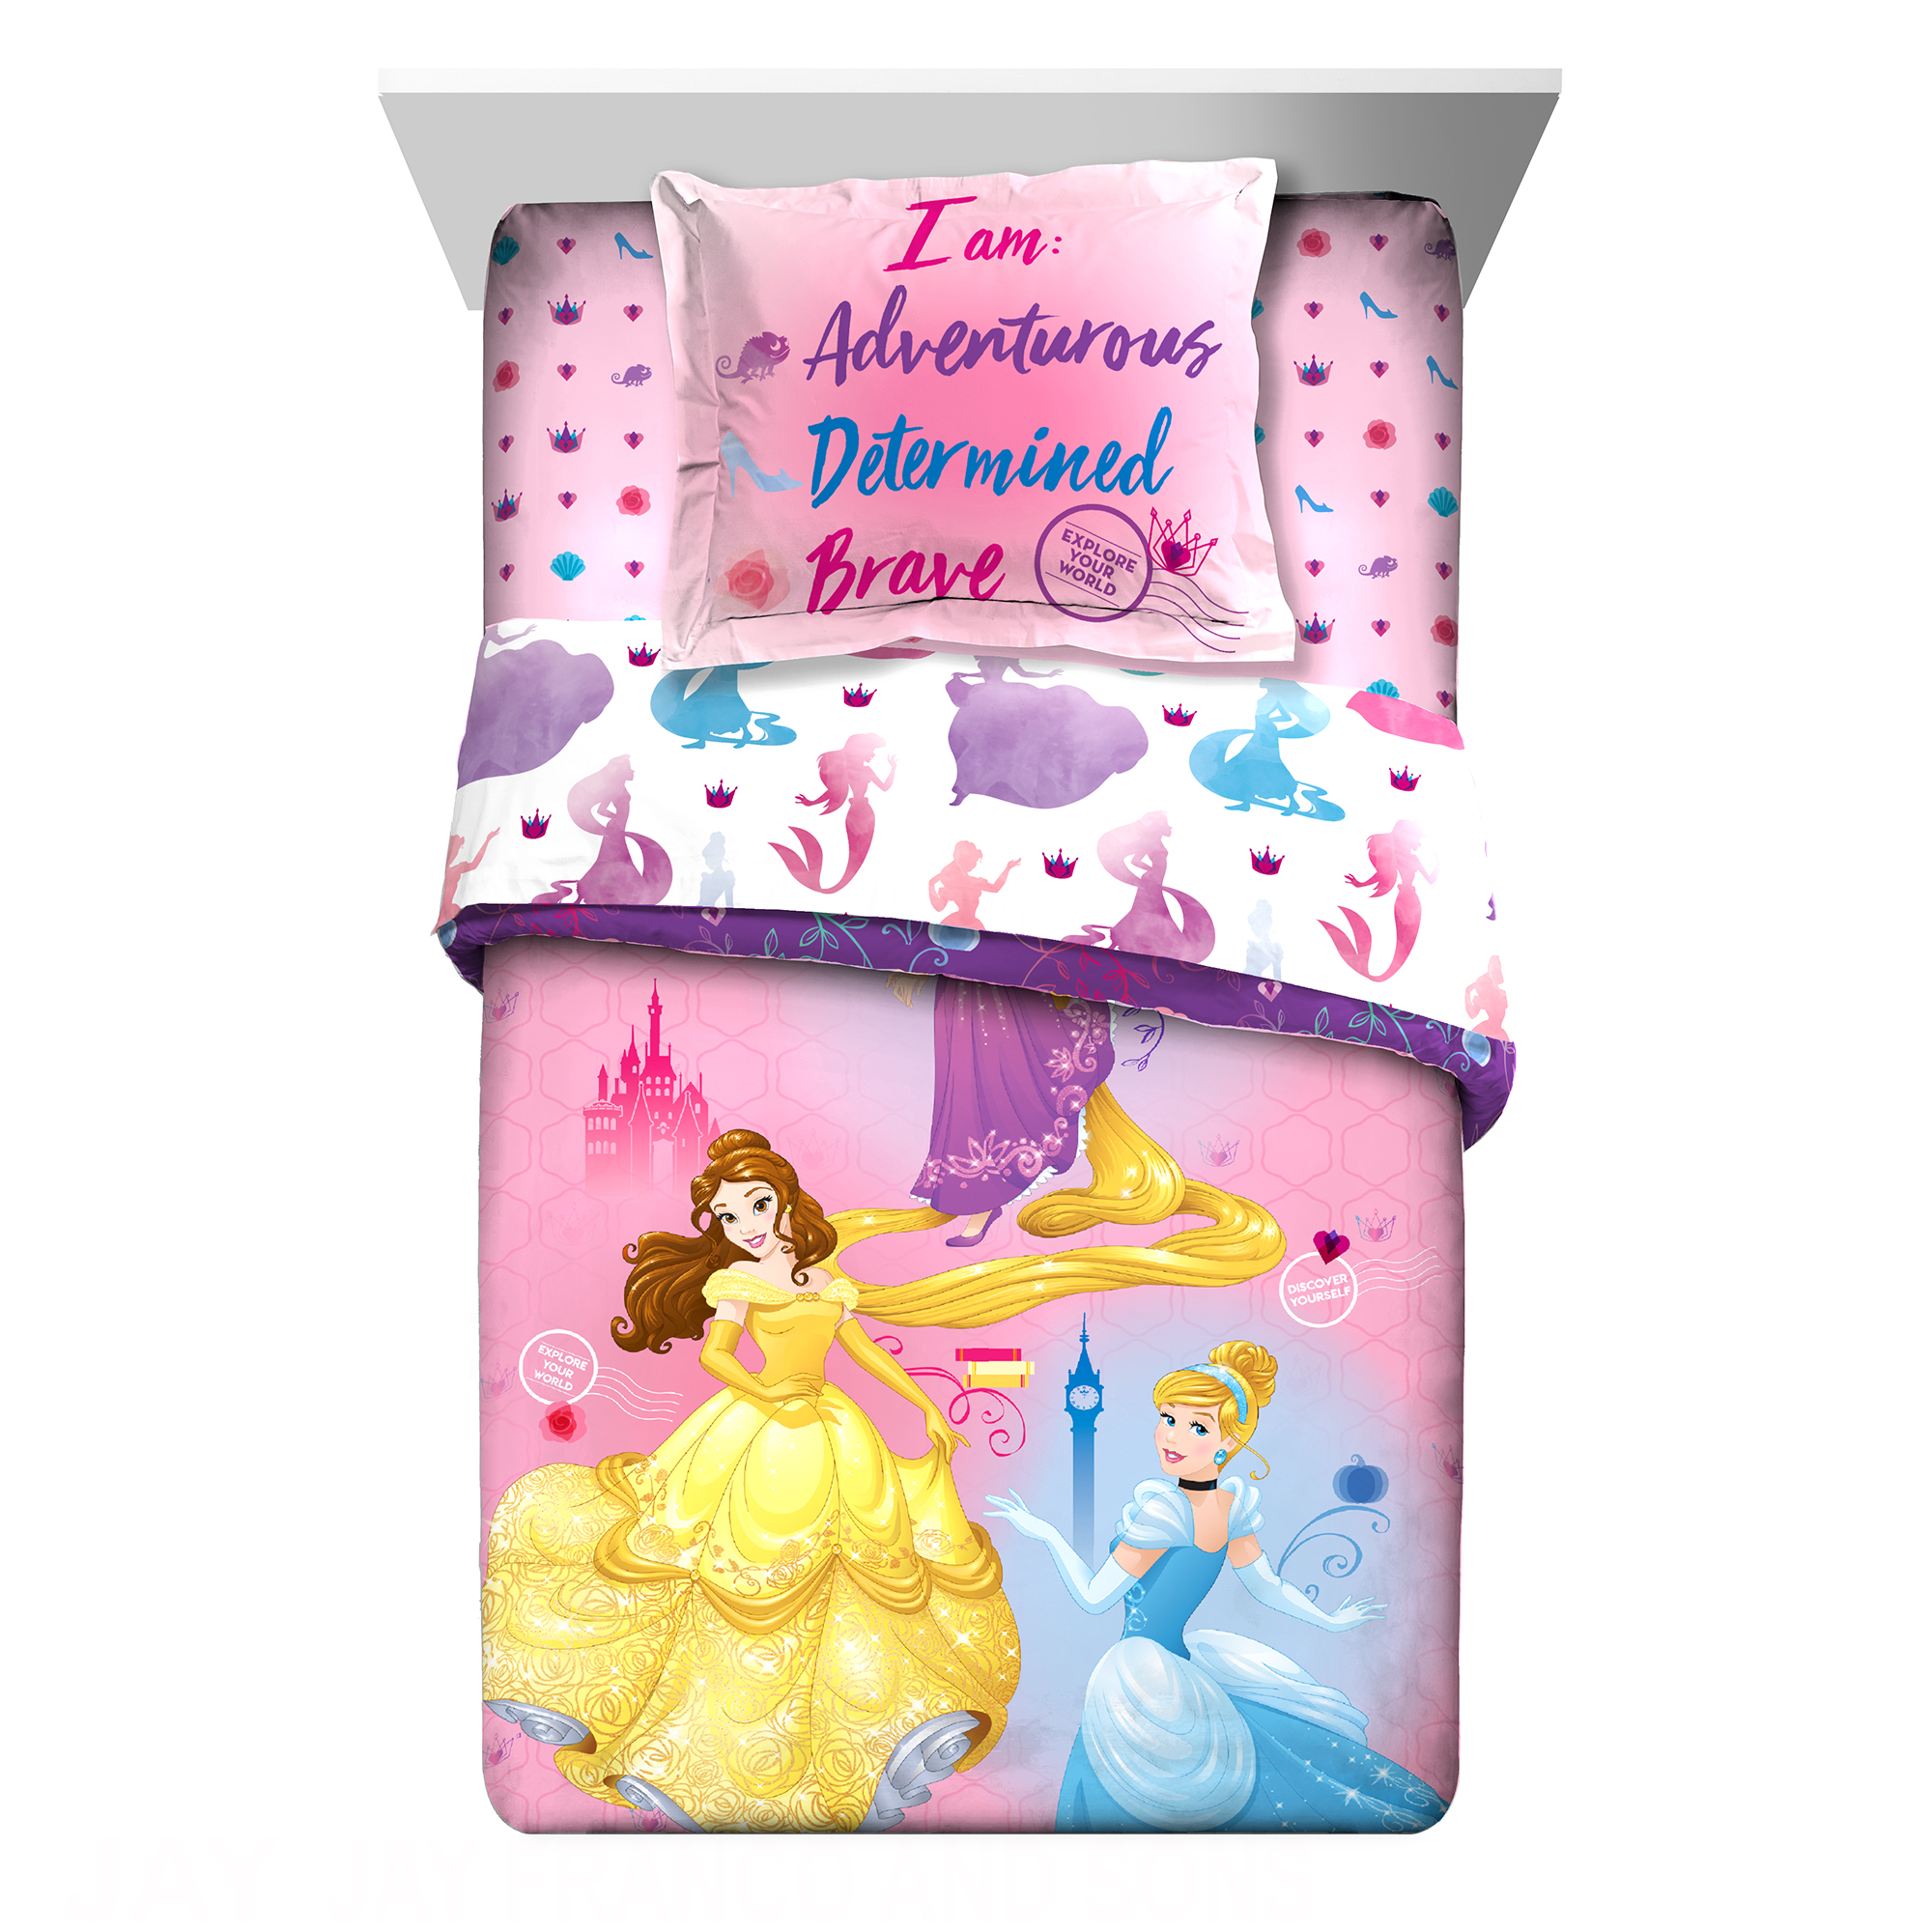 Disney Princess Ready to Explore Kids Bedding Twin & Full Comforter & Sham Set, 2 Piece